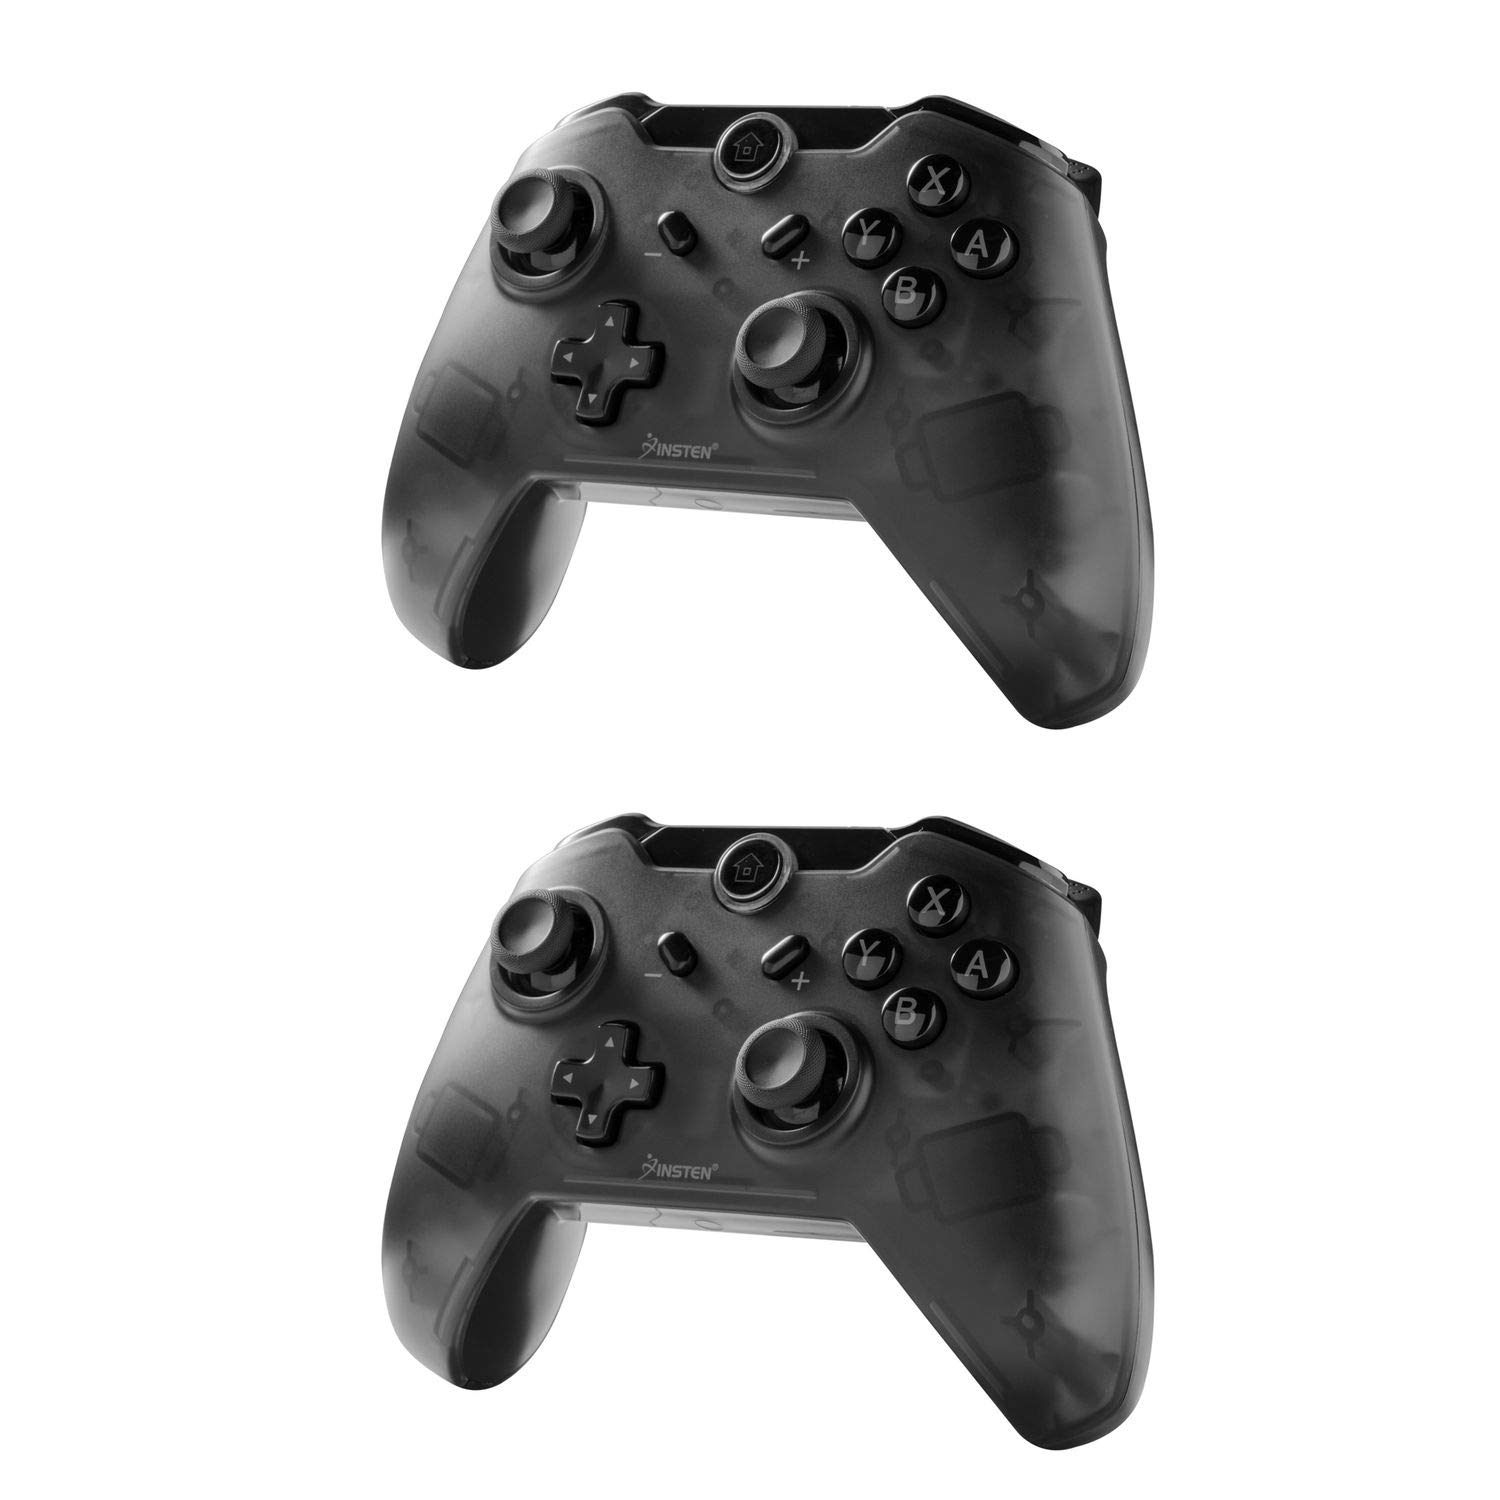 Insten Wireless Pro Remote Controller for Nintendo Switch 2-Pack Wireless Gaming Pro Controller Bluetooth Gamepad Joypad Compatible With Nintendo Switch Console, Black (with USB charging cable)